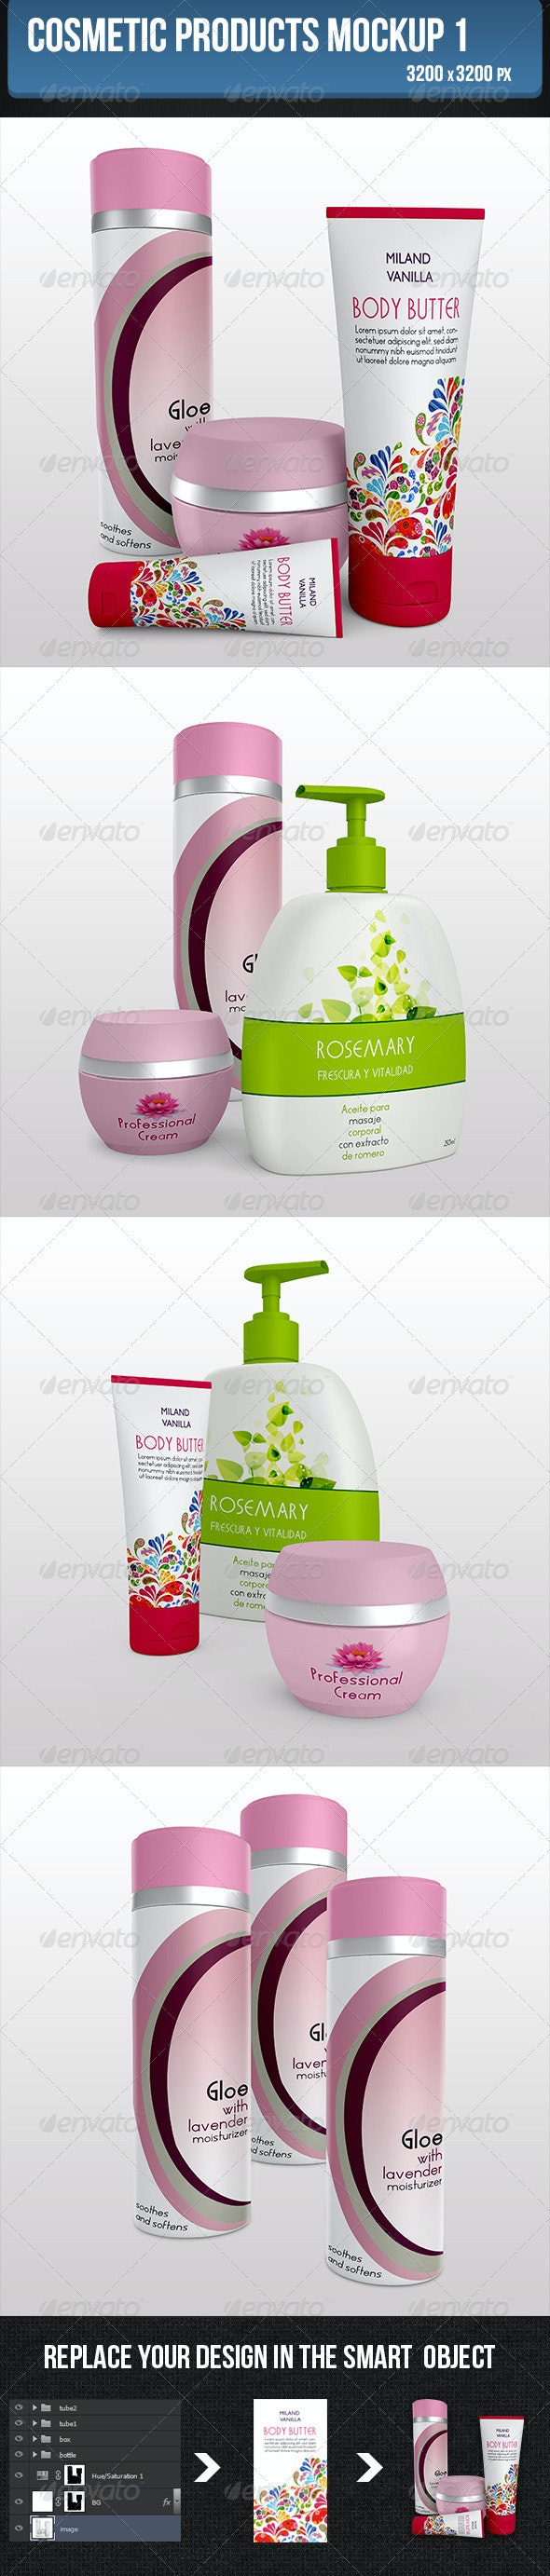 Cosmetic Products Mockup 1 - Product Mock-Ups Graphics